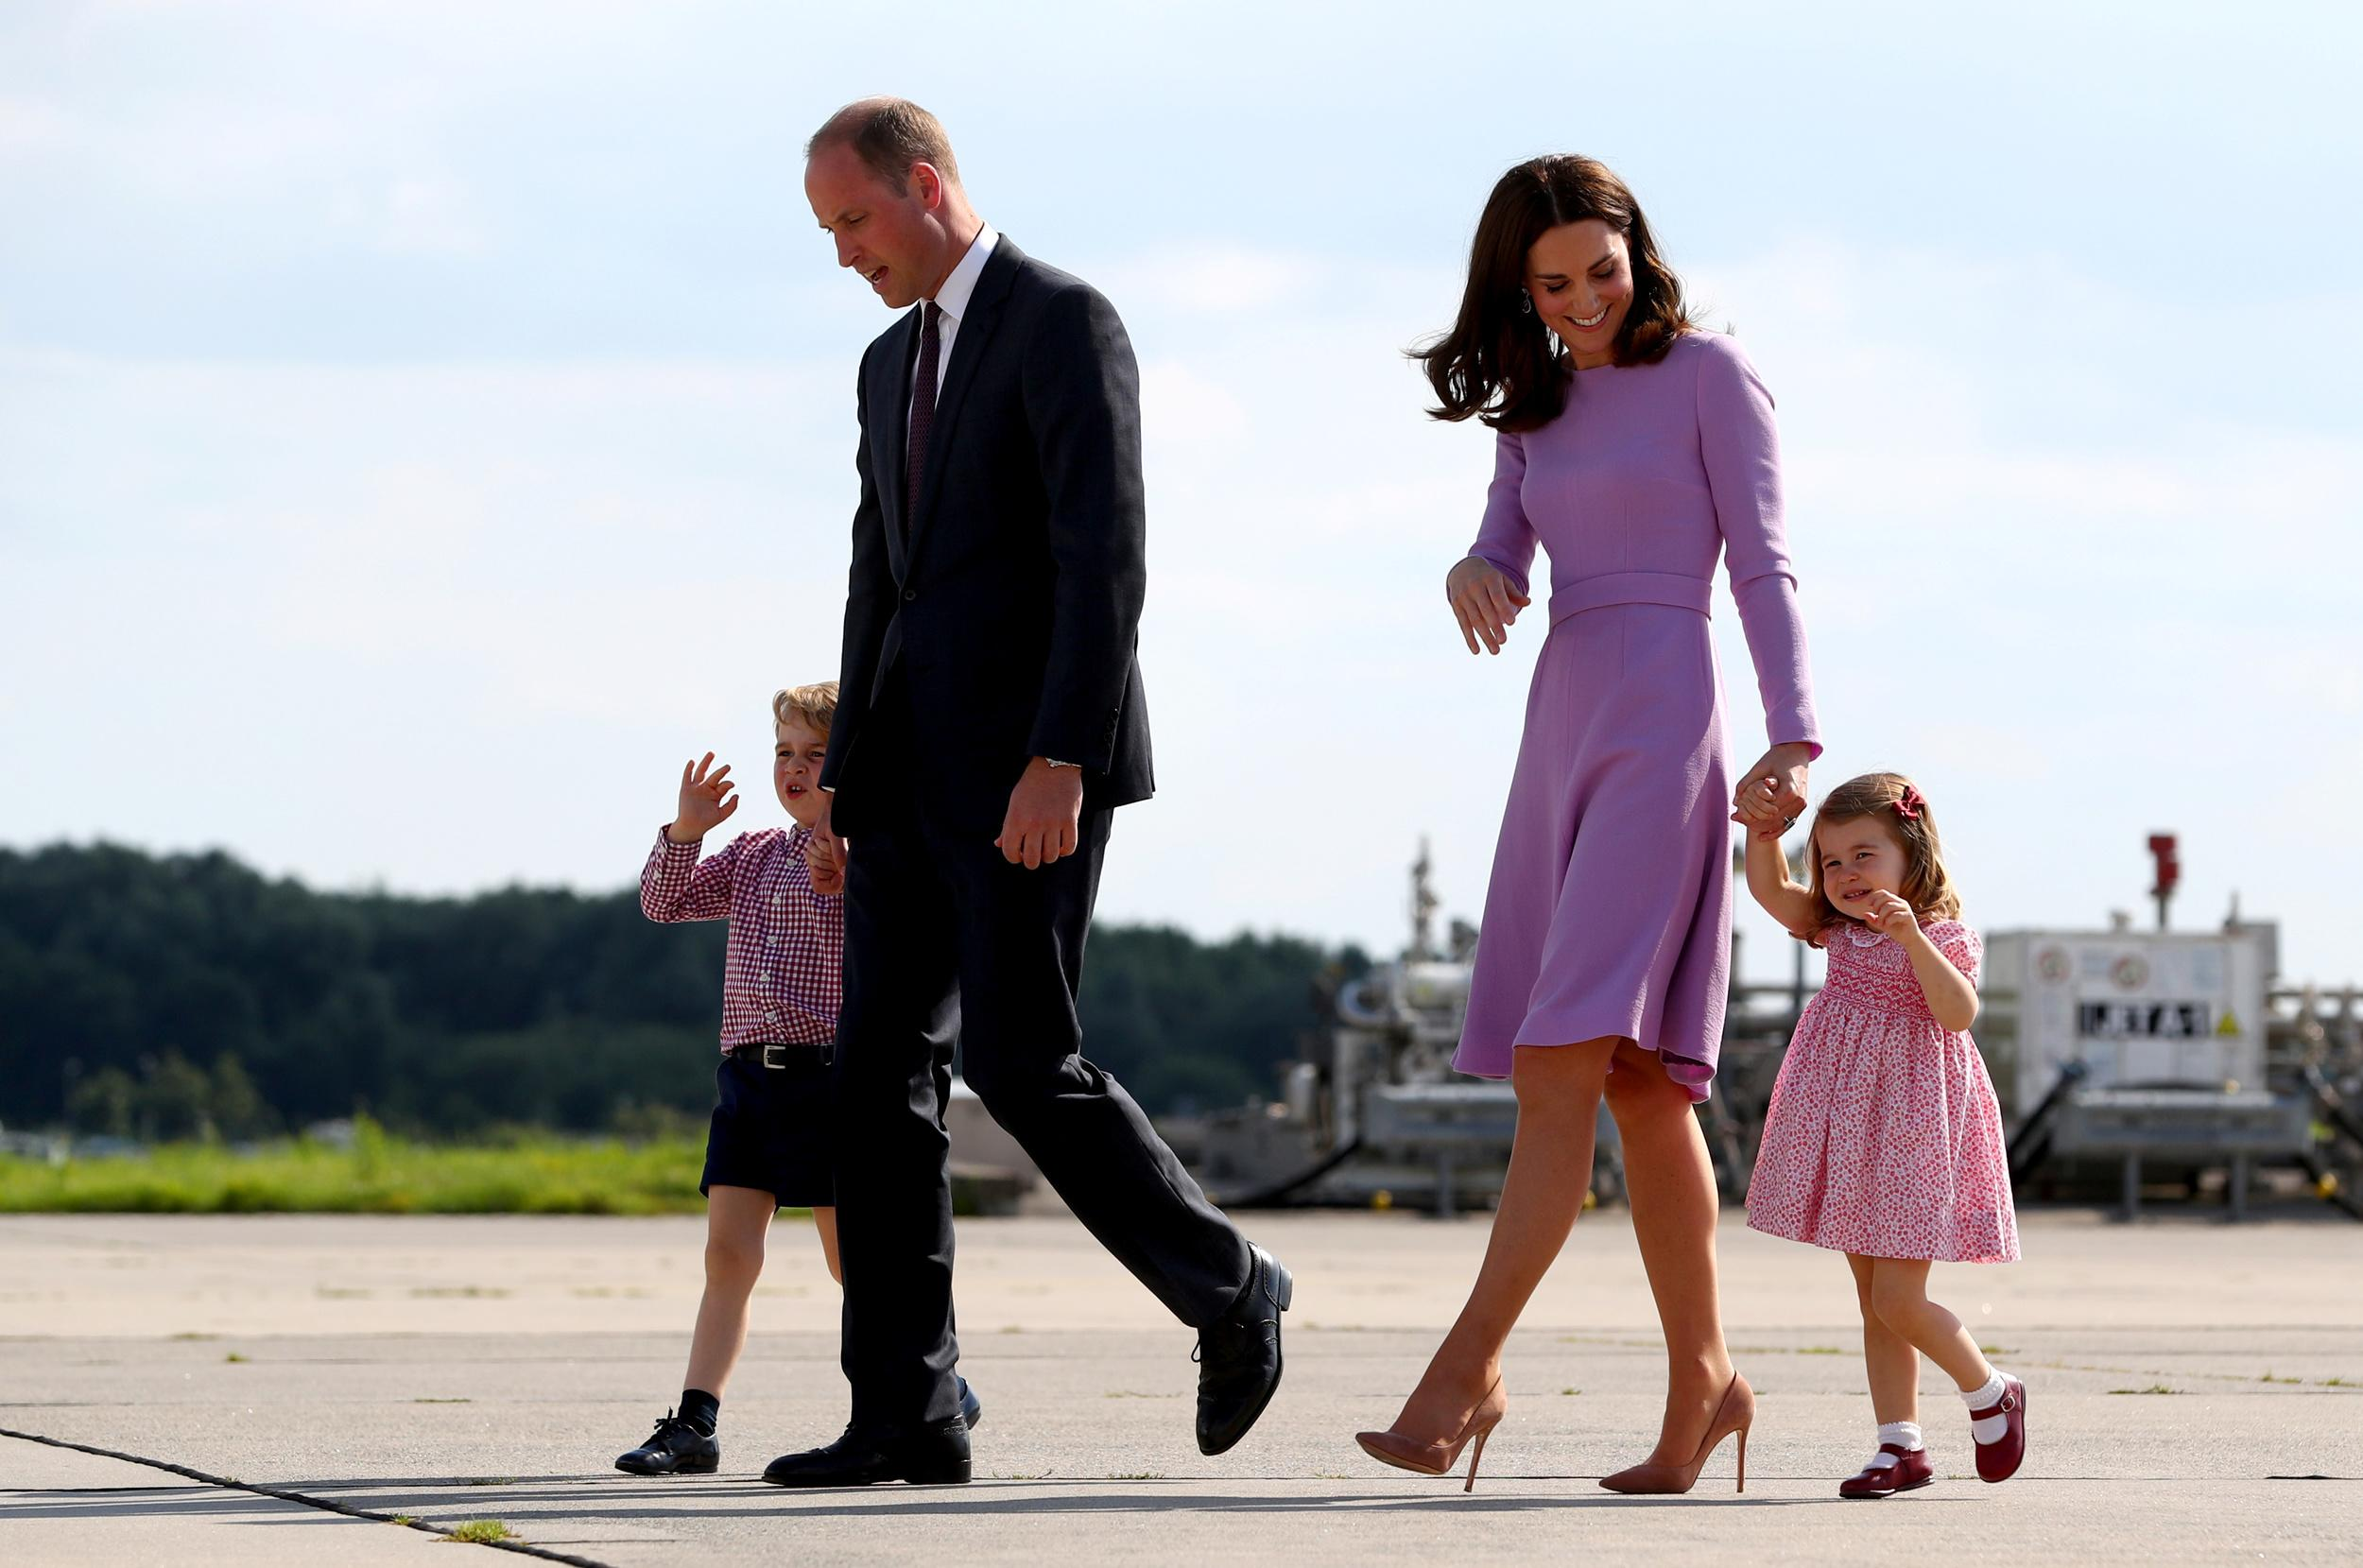 Britain's Prince William, the Duke of Cambridge, his wife Princess Kate, the Duchess of Cambridge, Prince George and Princess Charlotte walk at the airfield in Hamburg Finkenwerder, Germany, July 21, 2017.    REUTERS/Christian Charisius/POOL